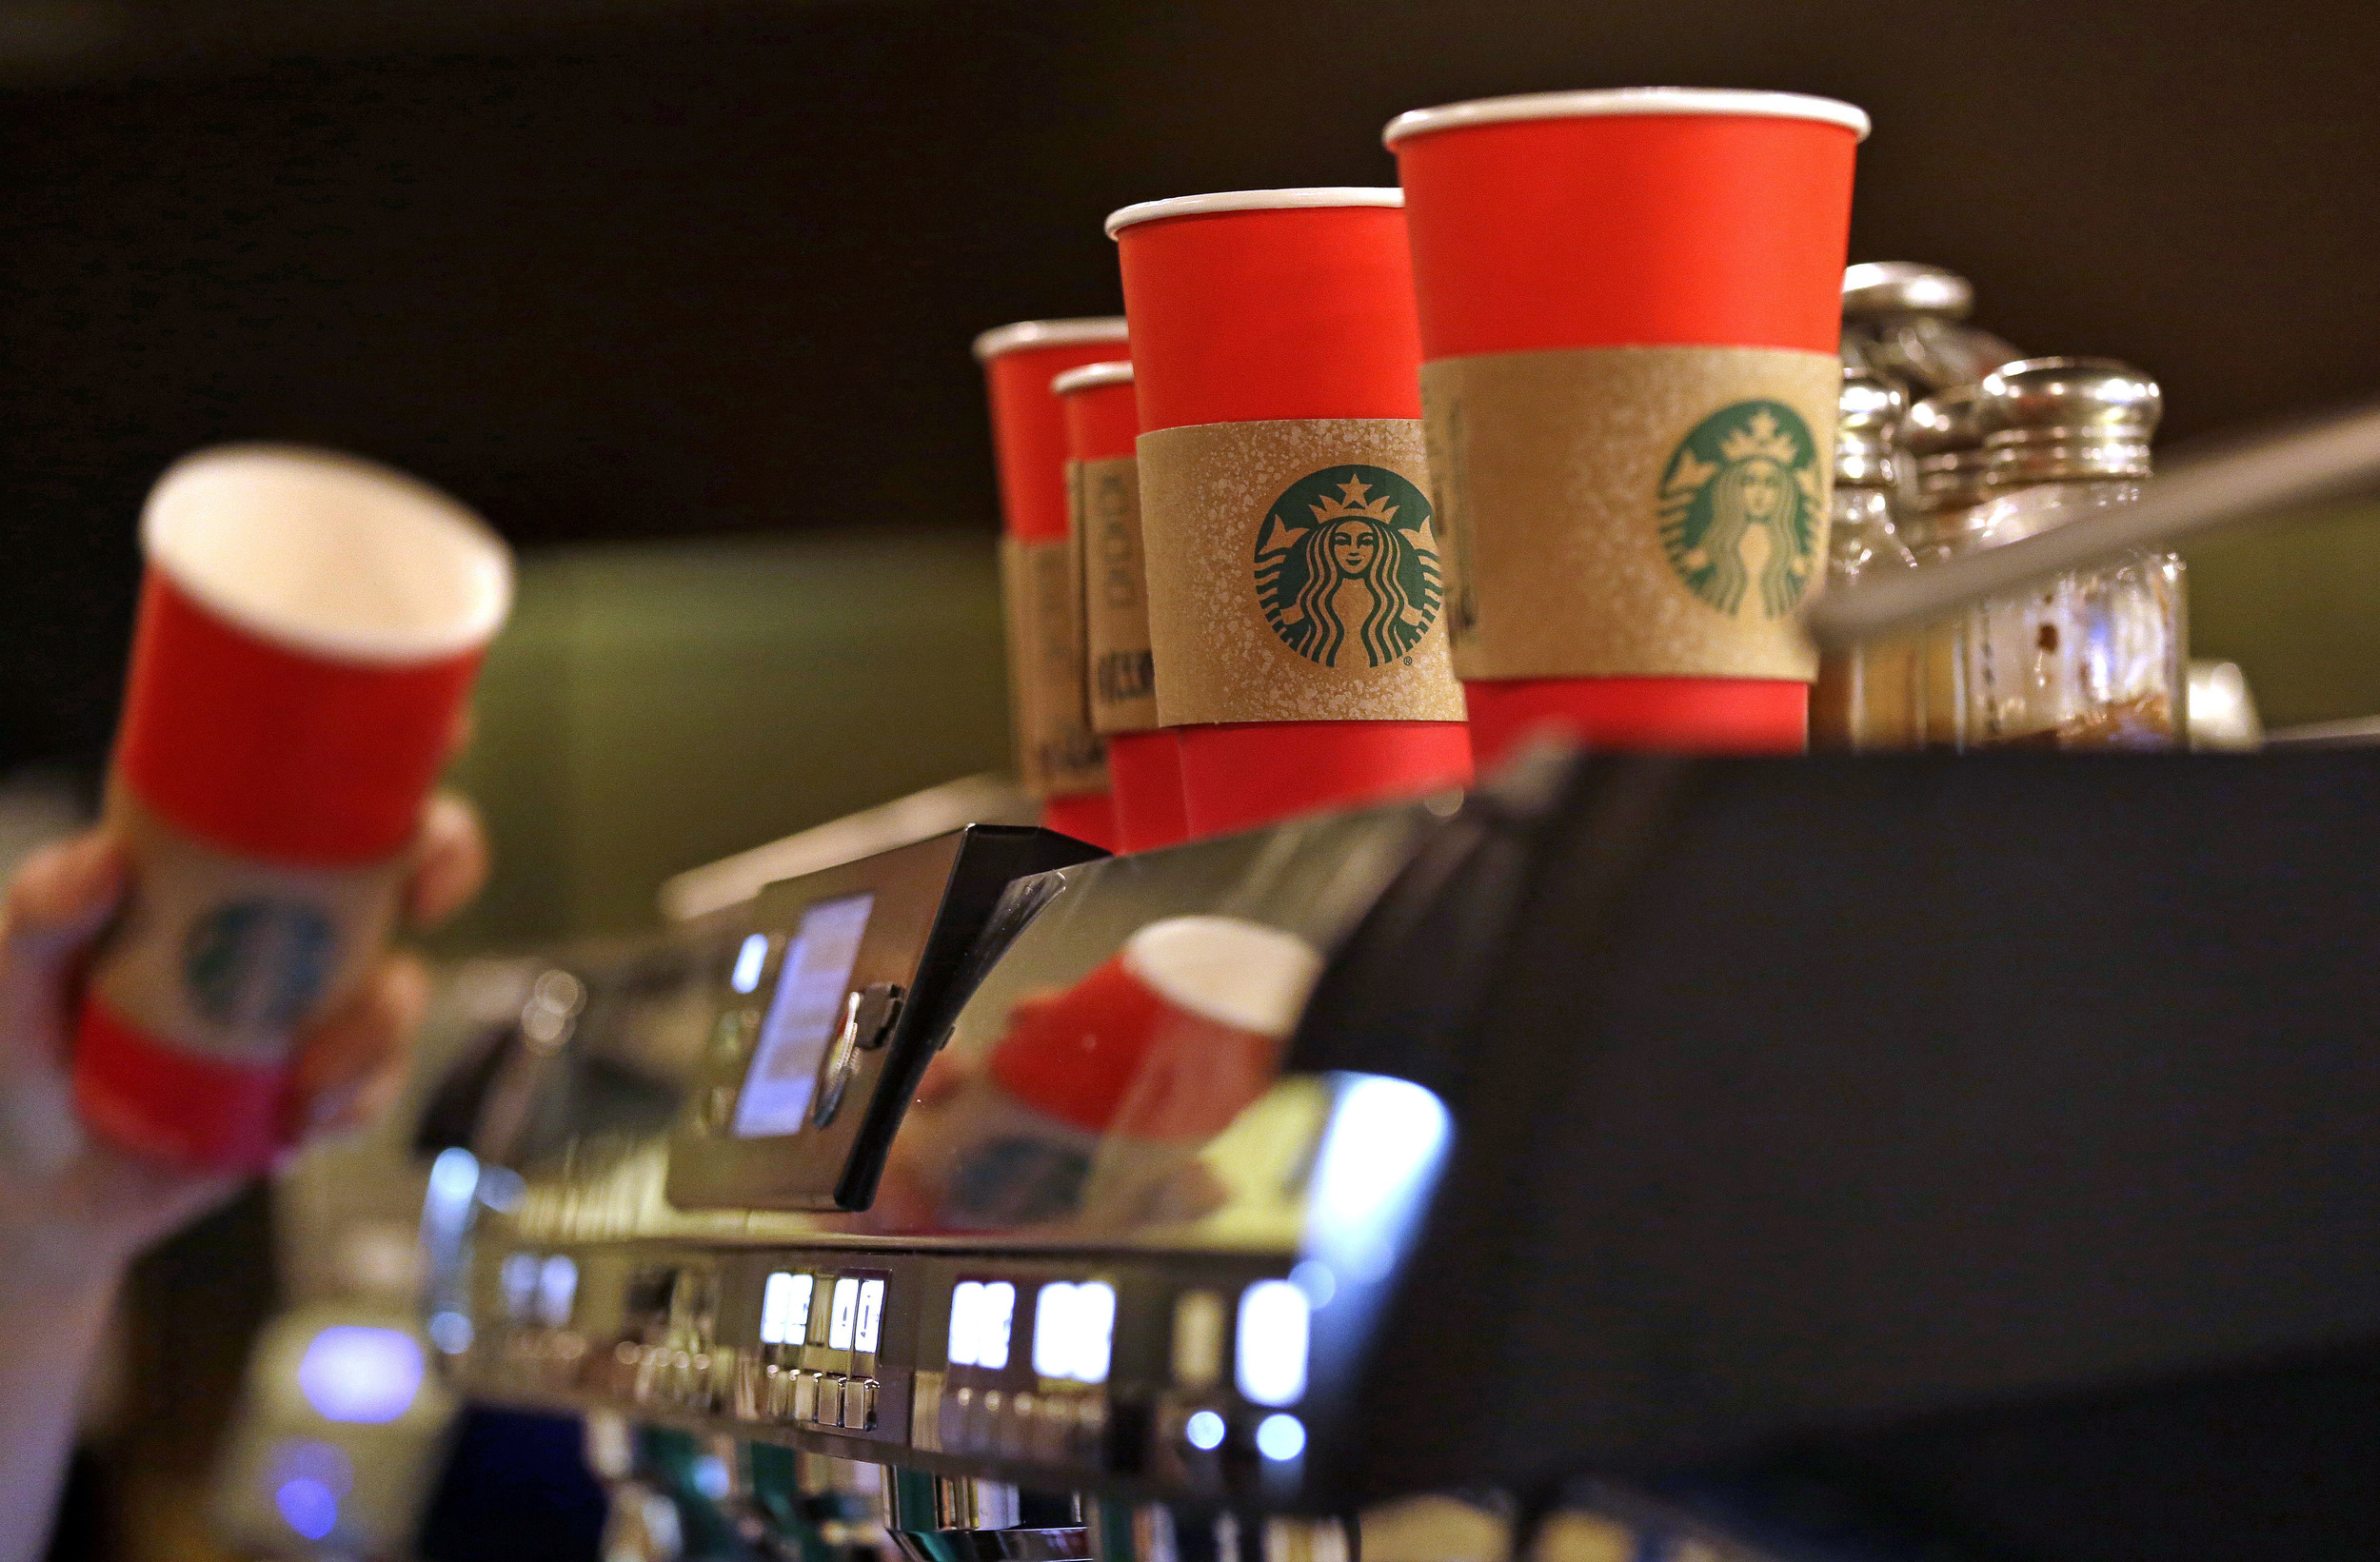 A barista reaches for a red paper cup as more, with cardboard liners already attached, line the top of an espresso machine at a Starbucks coffee shop in the Pike Place Market, Tuesday, Nov. 10, 2015, in Seattle. It's as red as Santa's suit, a poinsettia blossom or a loud Christmas sweater. Yet Starbucks' minimalist new holiday coffee cup has set off complaints that the chain is making war on Christmas. (Elaine Thompson/AP)